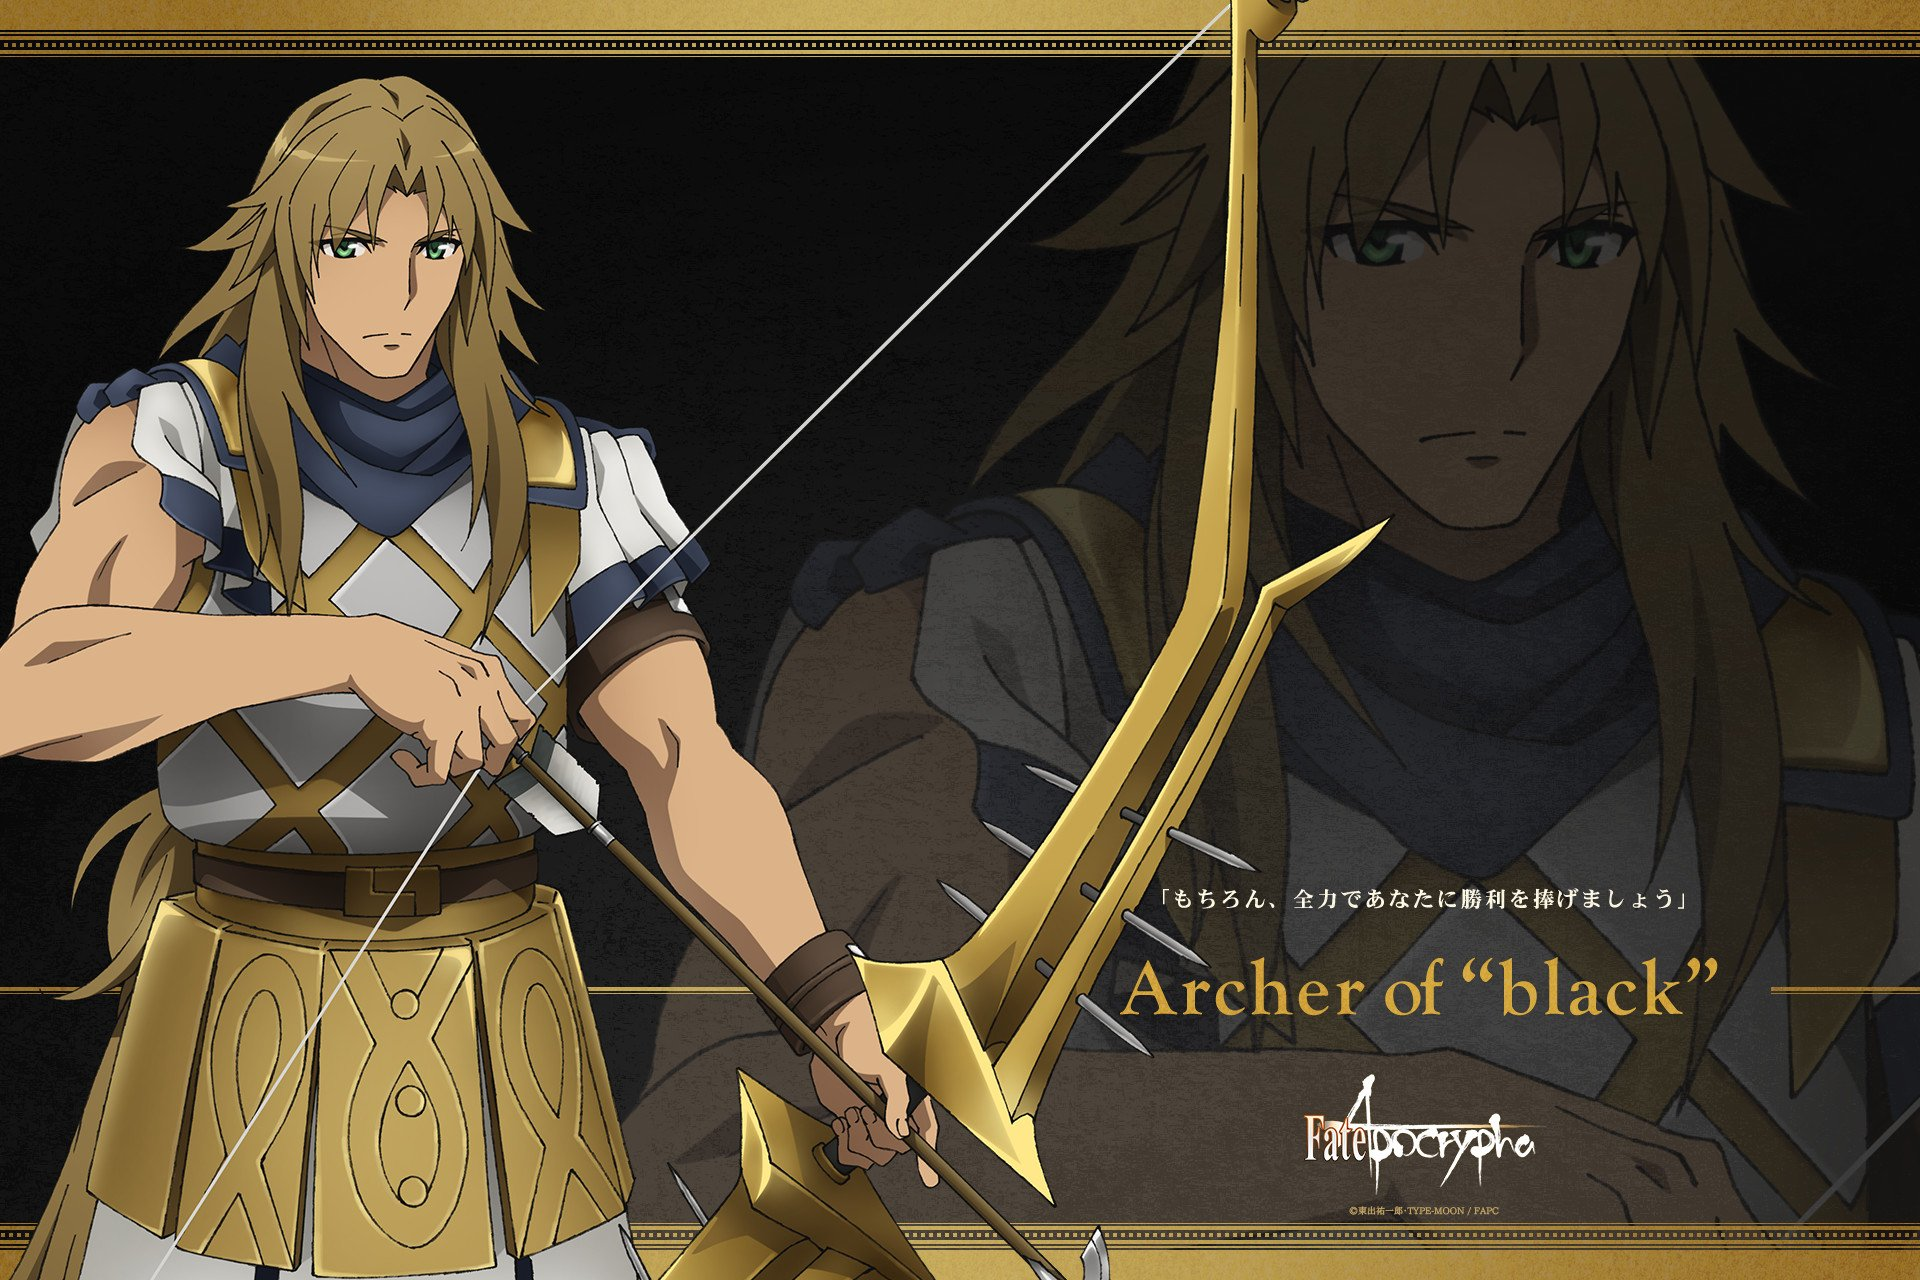 Anime - Fate/Apocrypha Archer of Black (Fate/Apocrypha) Wallpaper